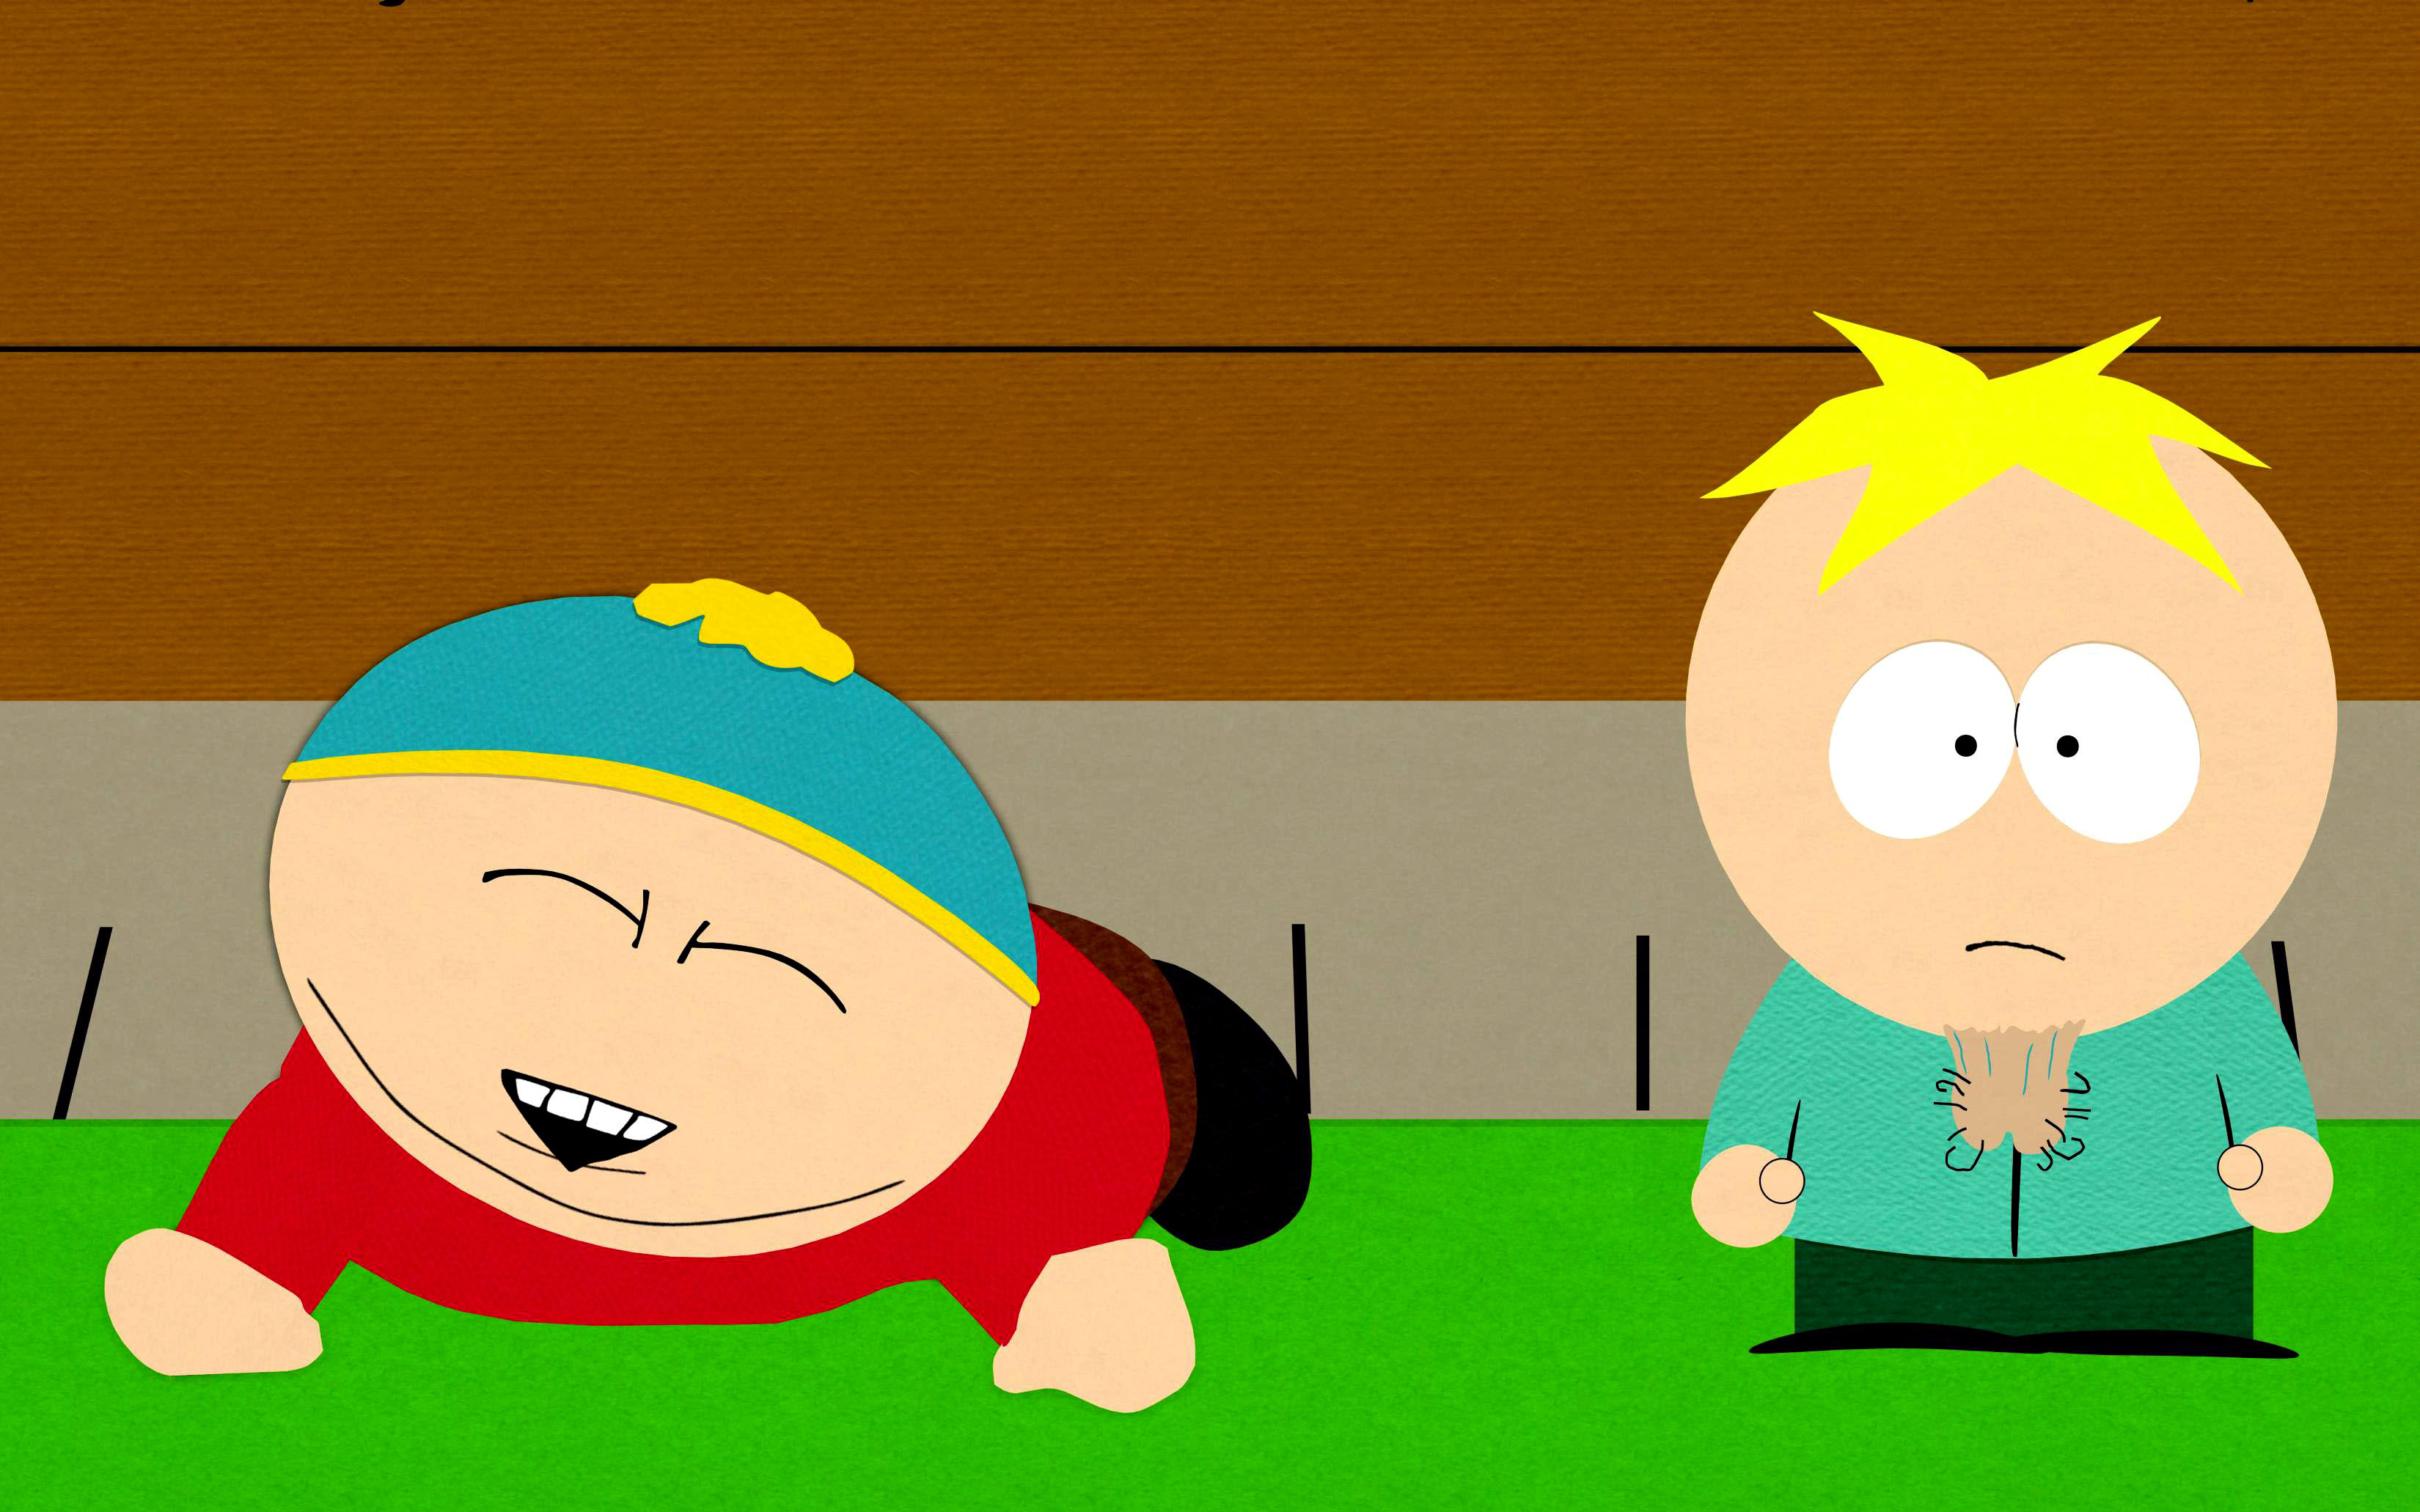 South park hd wallpaper background image 3300x2062 - South park wallpaper butters ...